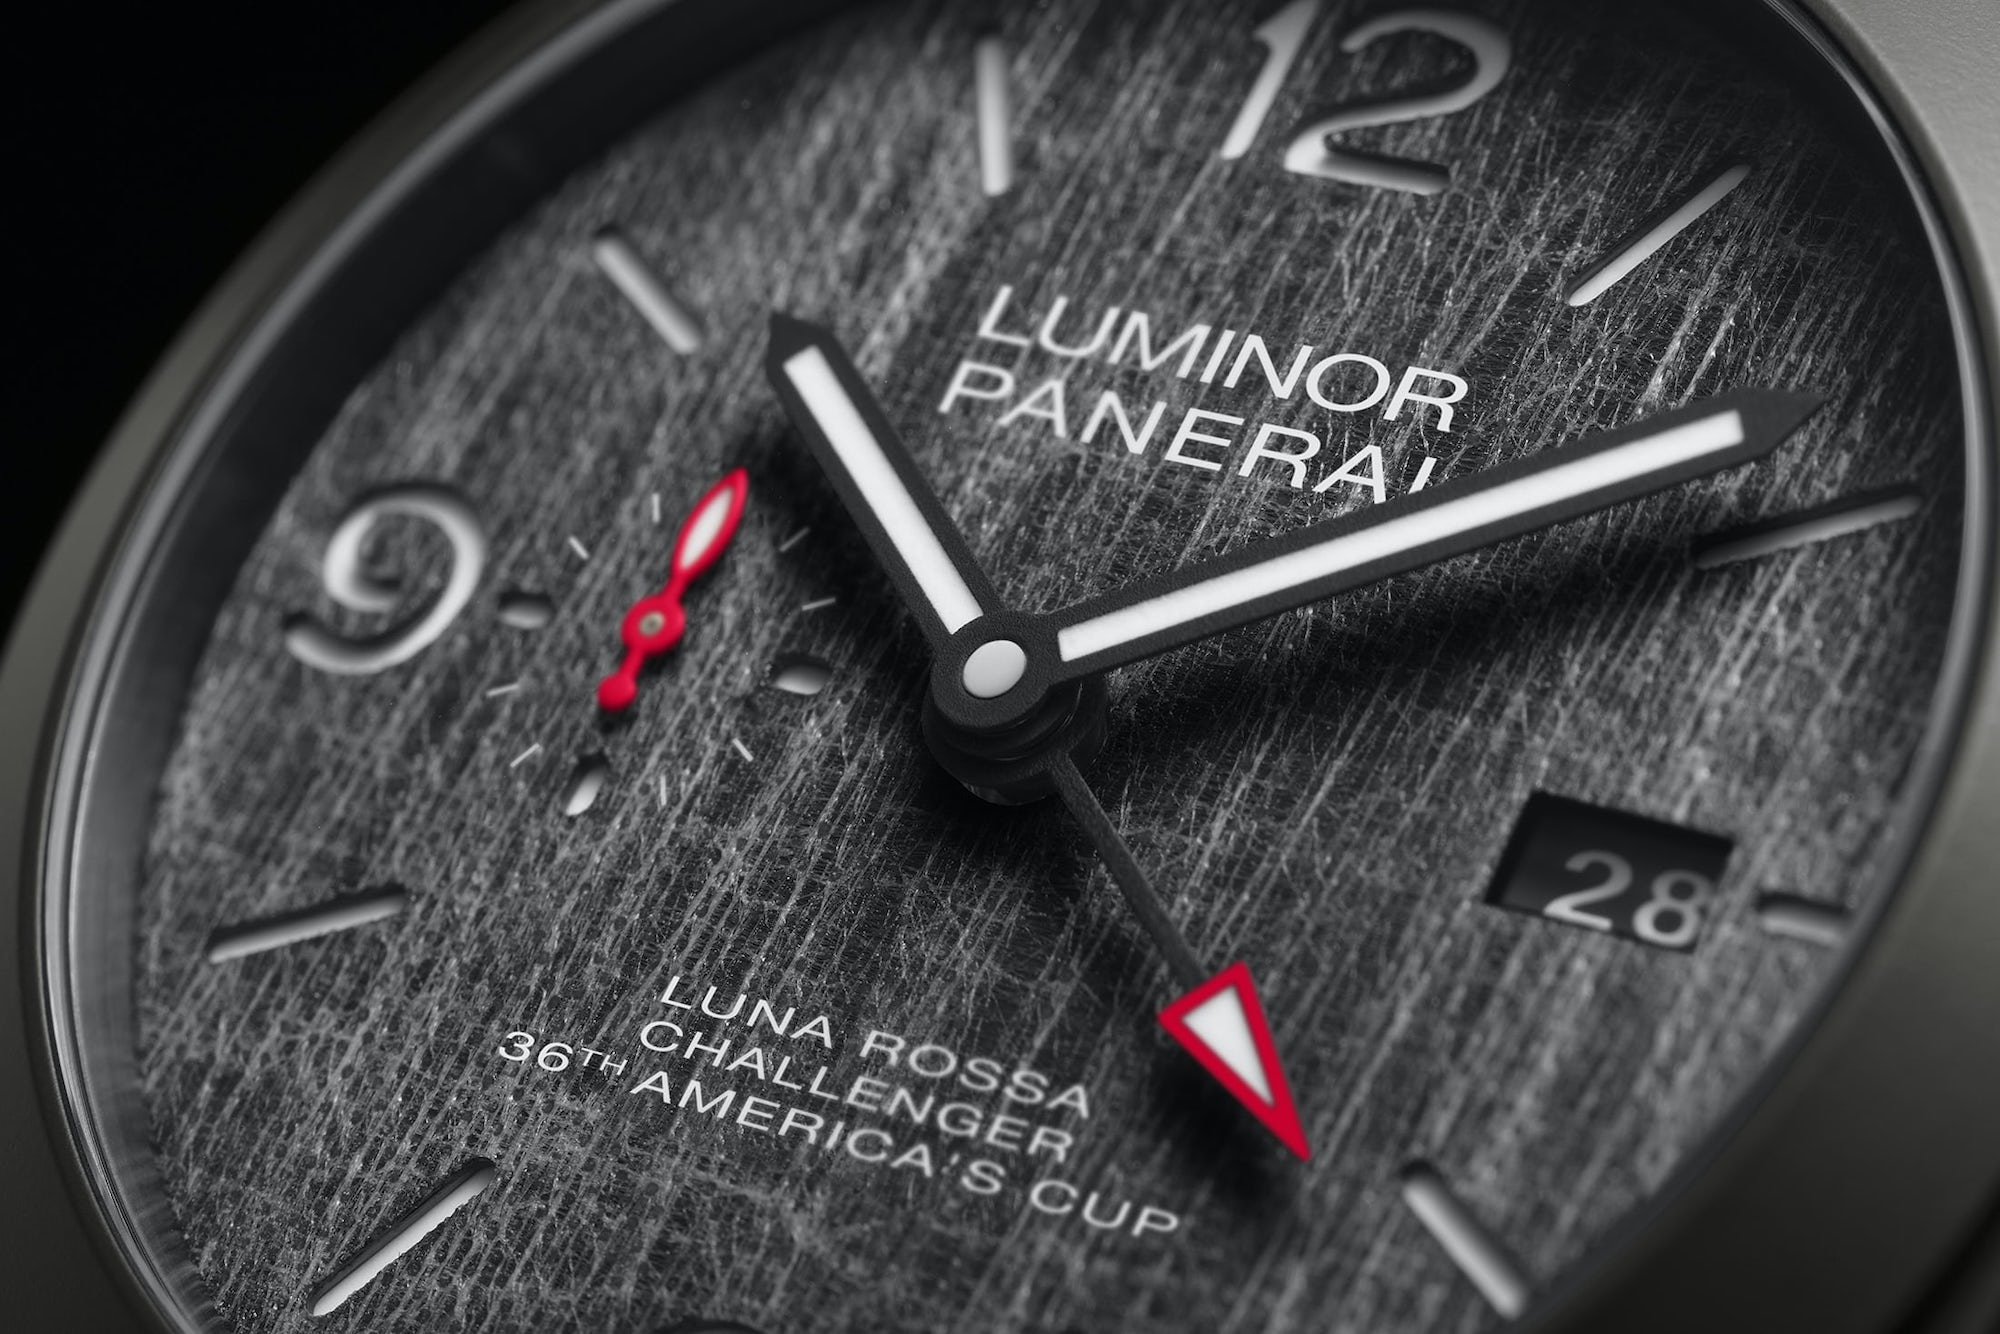 Panerai Luminor Luna Rossa GMT 44mm Pam 1036 detalle esfera